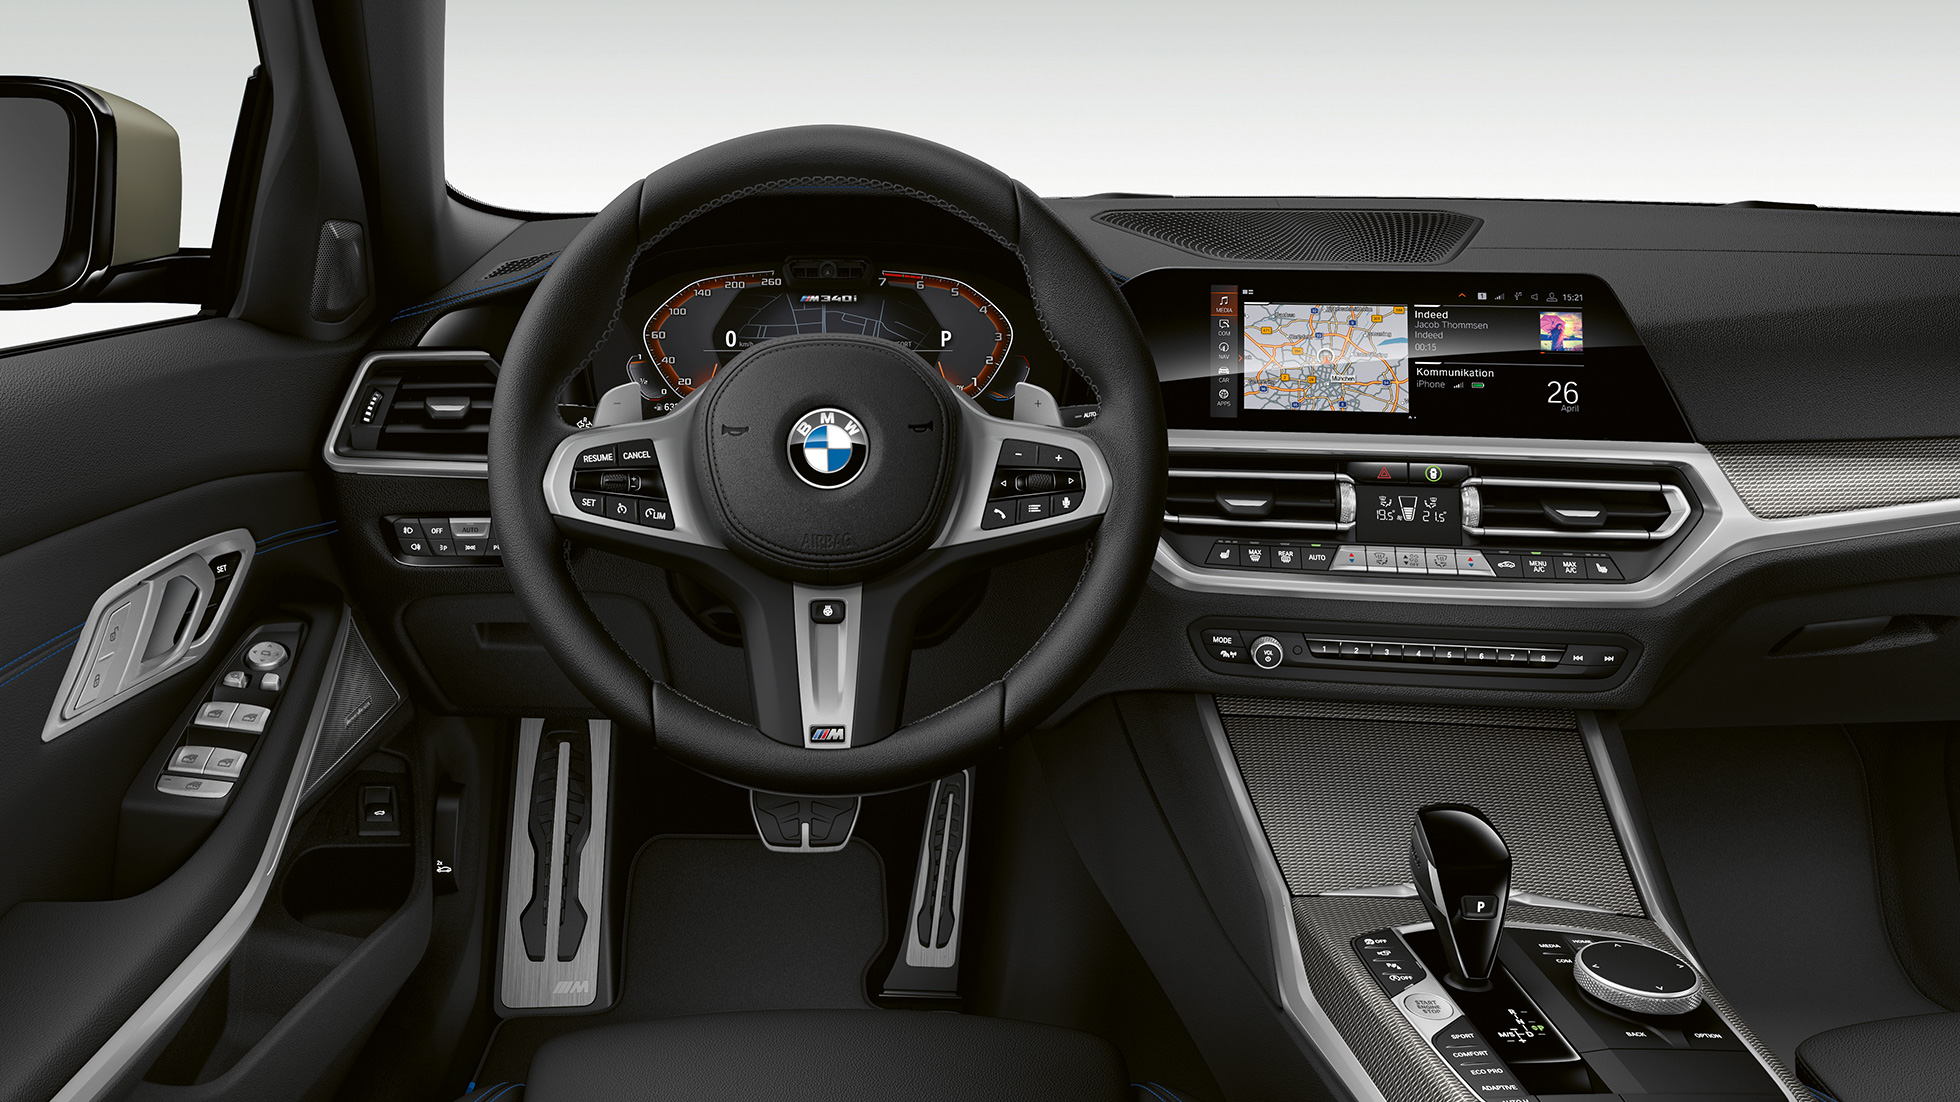 Frontal close-up of the driver's cockpit of the BMW 3 Series M340i xDrive Sedan.